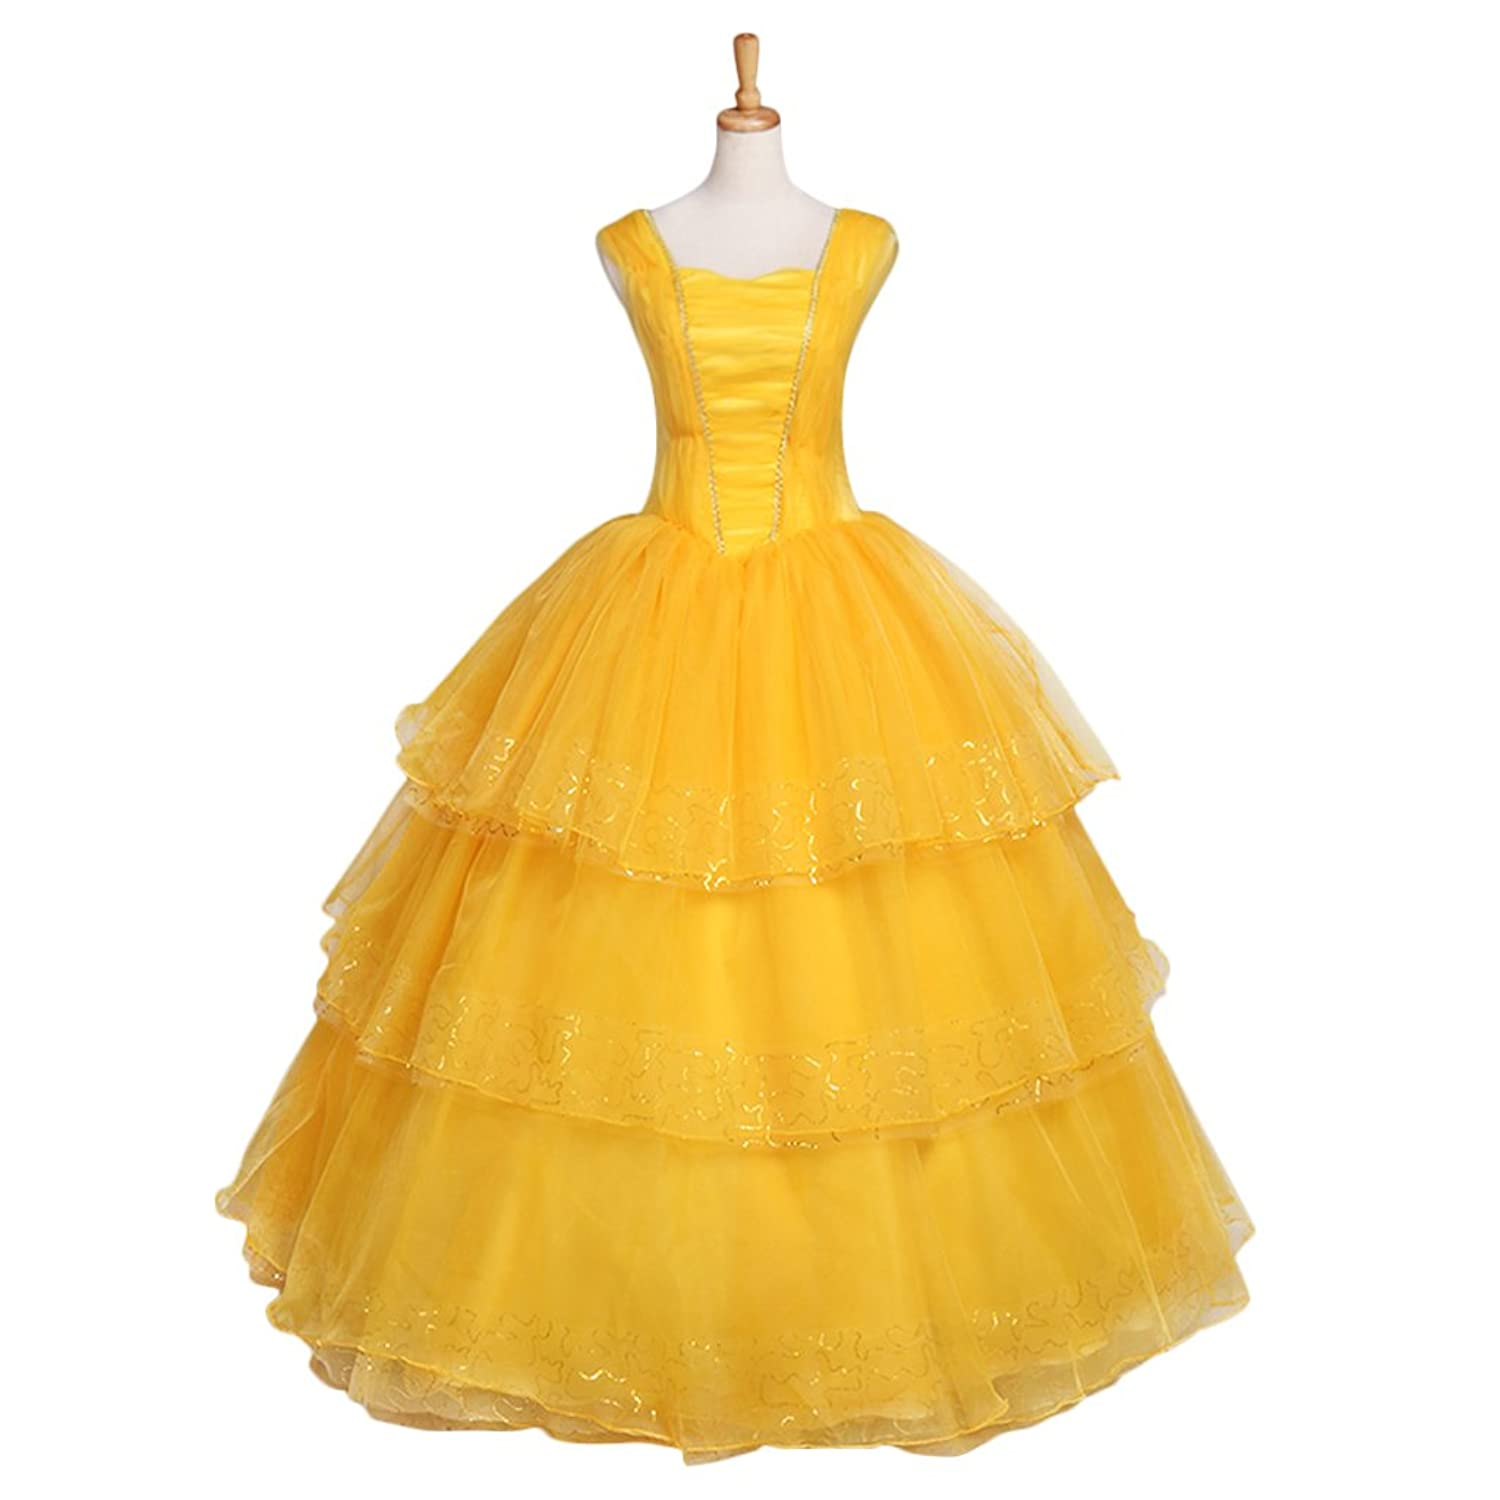 CosplayDiy Women's Dress for Beauty and the Beast Princess Belle Cosplay New Style Emma Watson